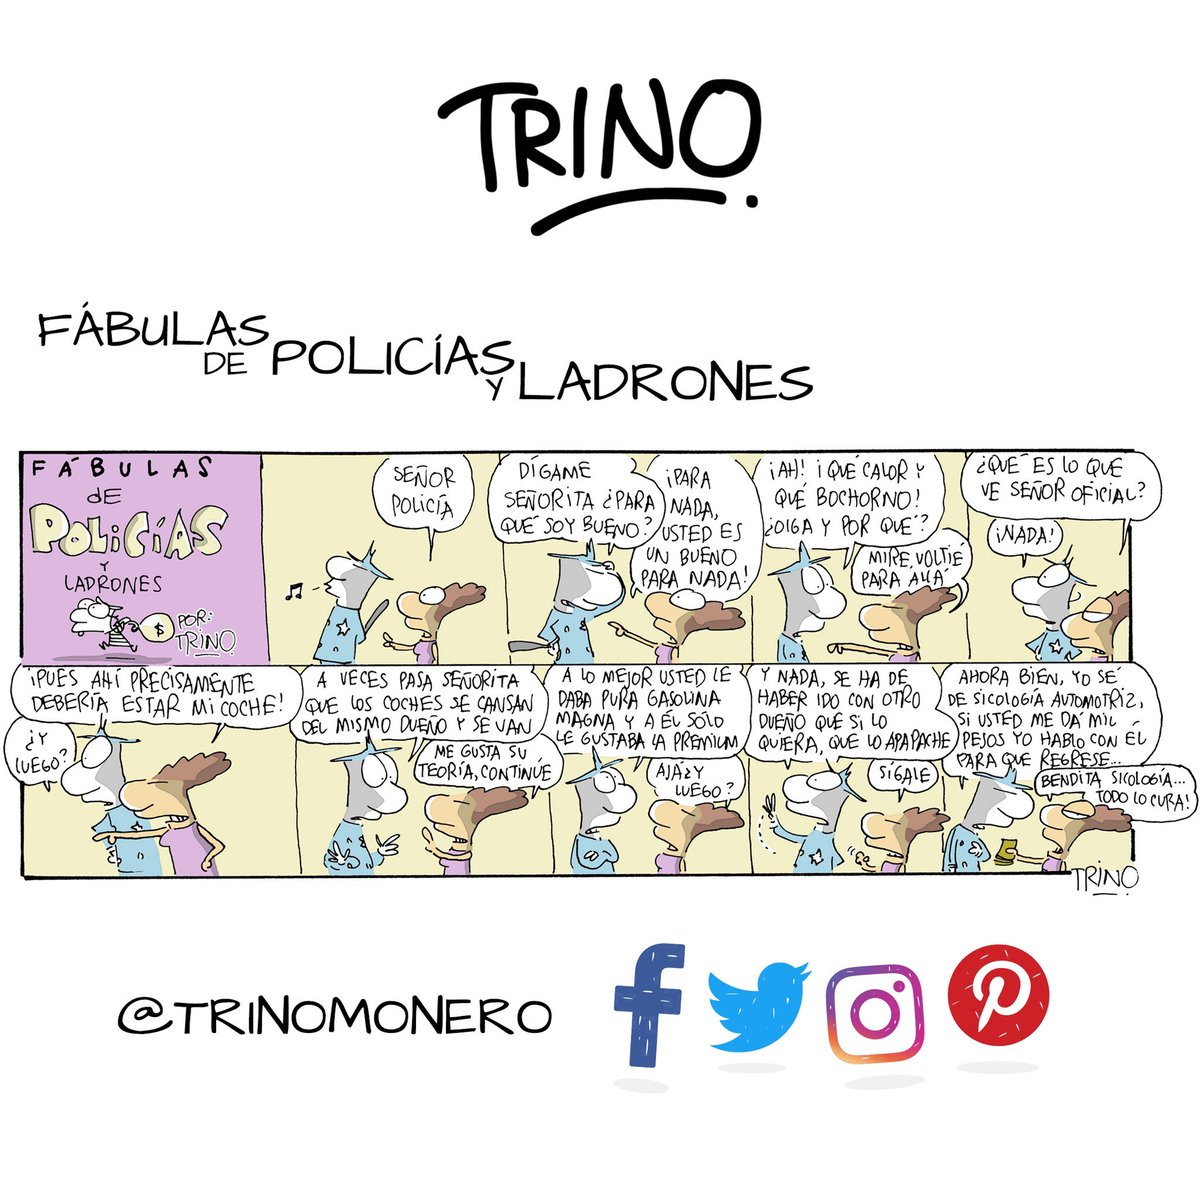 Cuando los coches se van... Don @trinomonero https://t.co/B5sf80BnJH